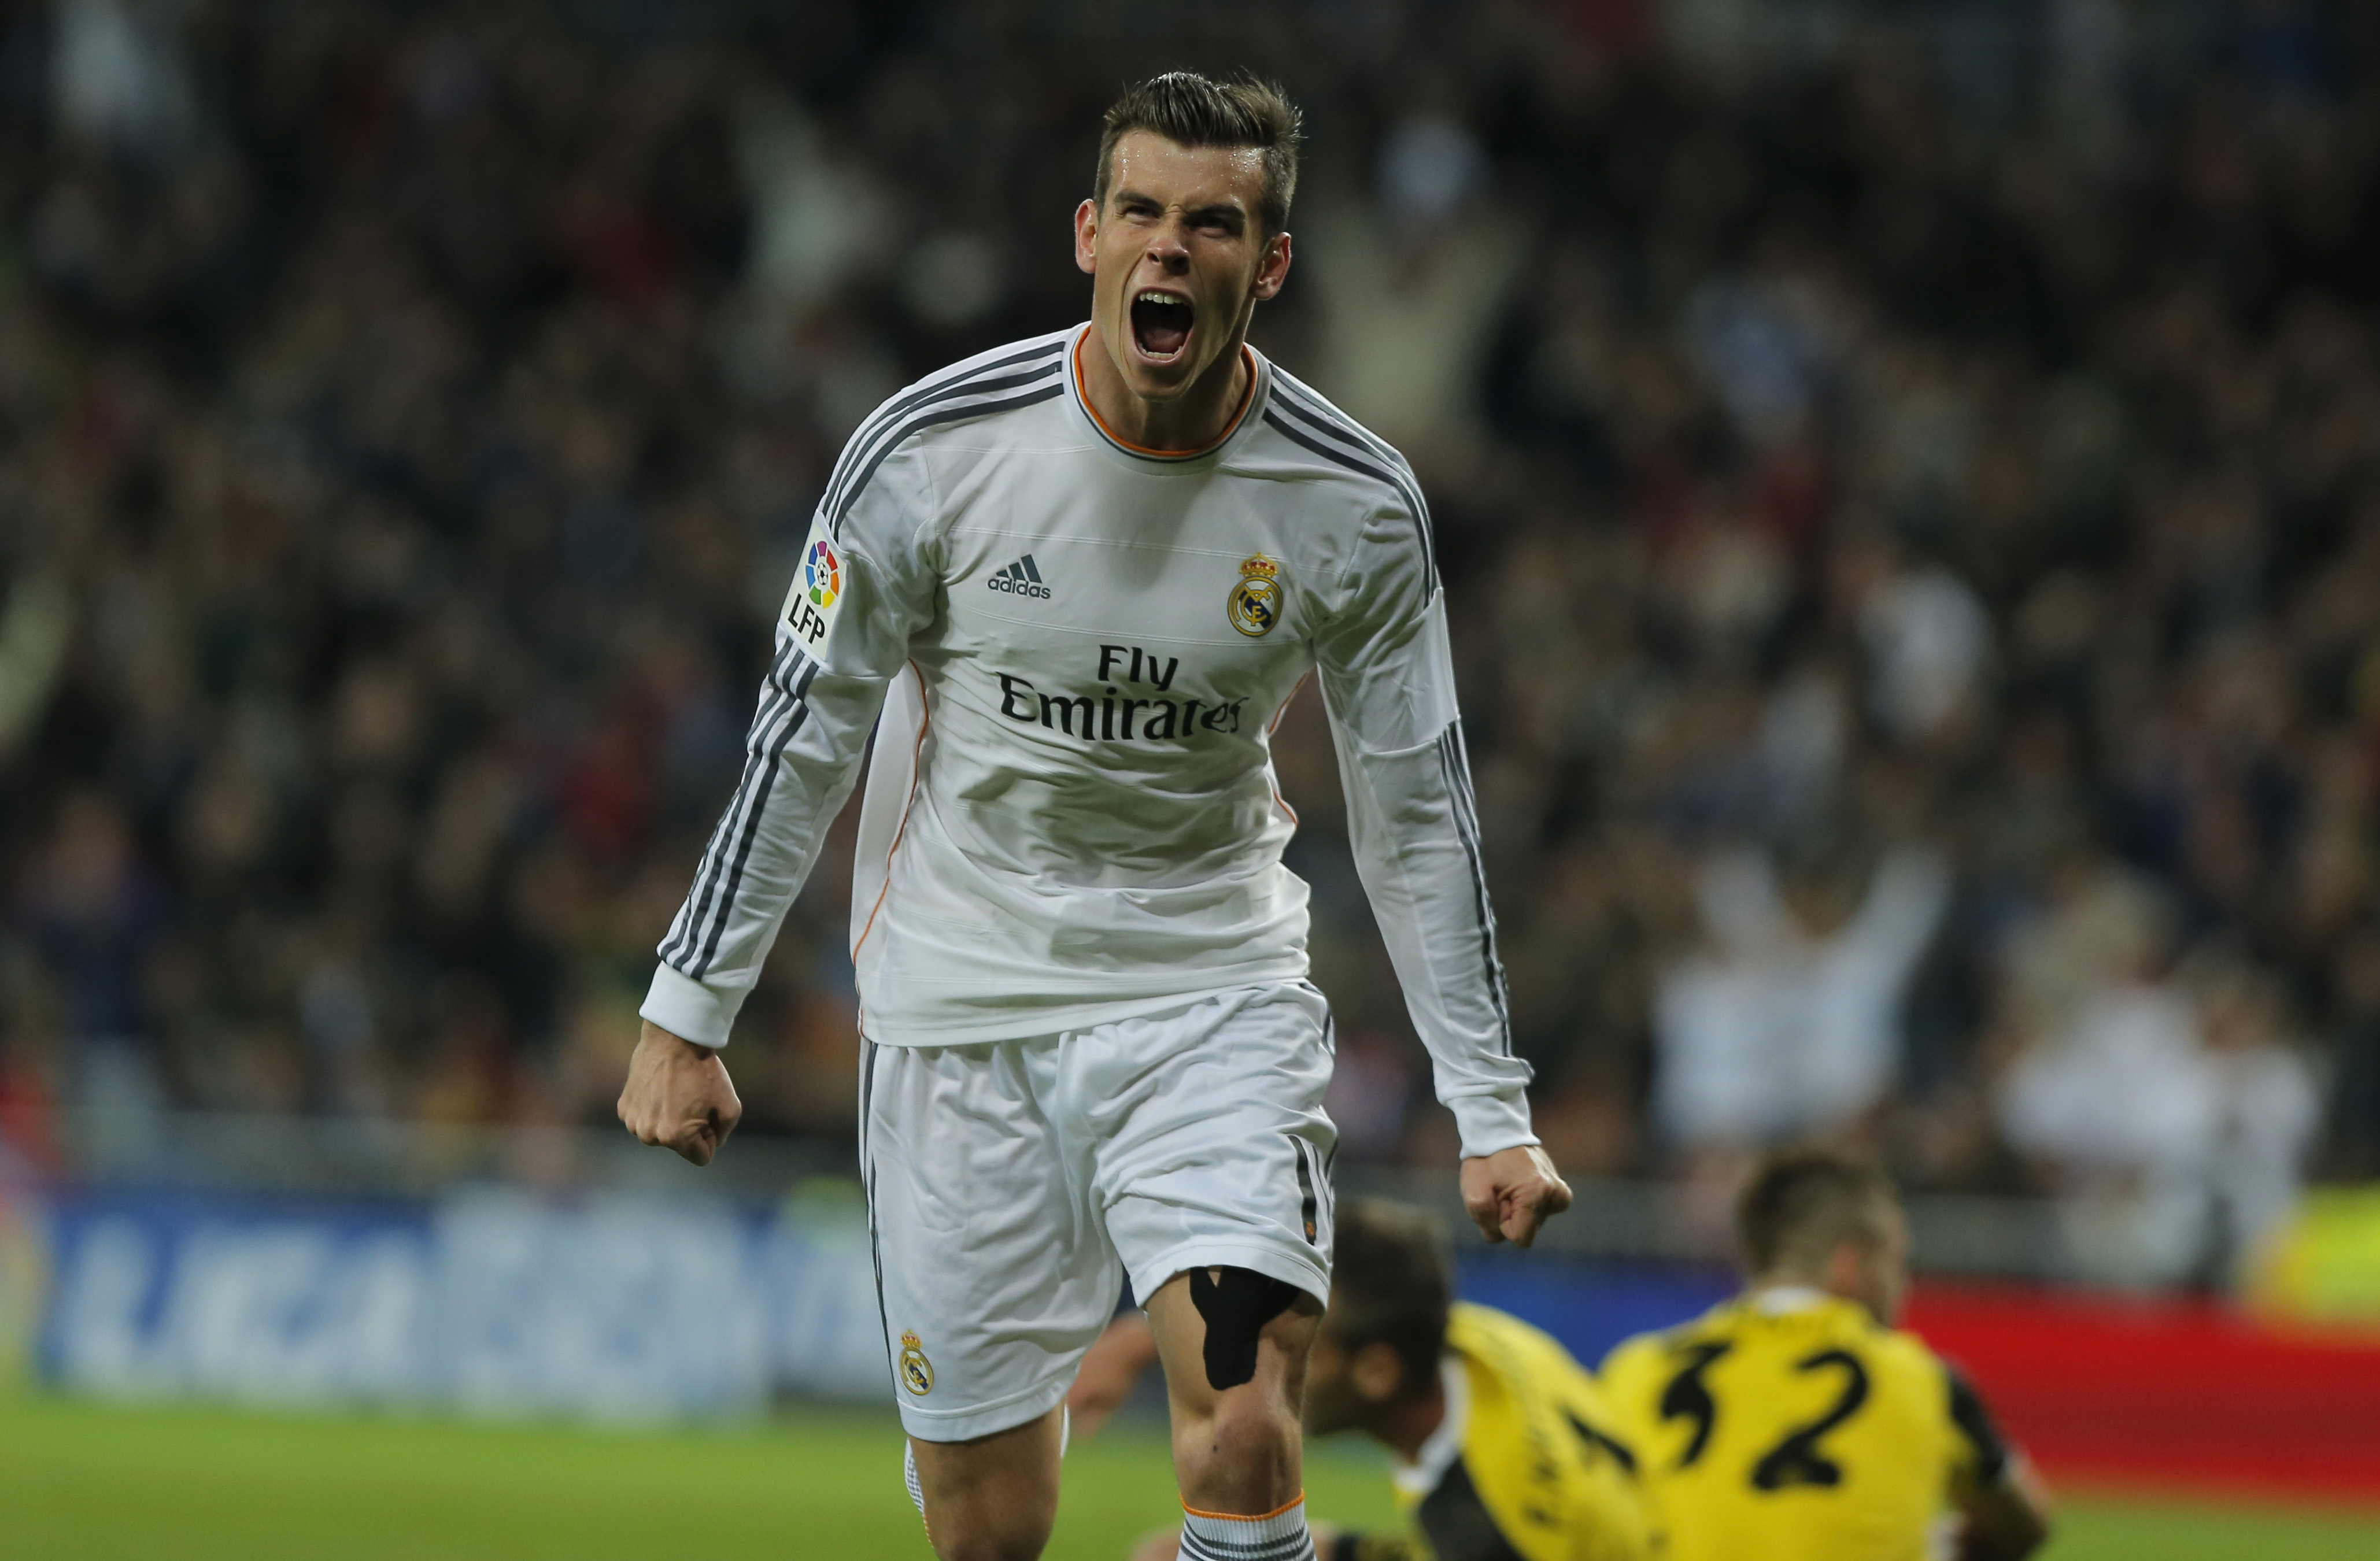 fantastic gareth bale goal download mobile images